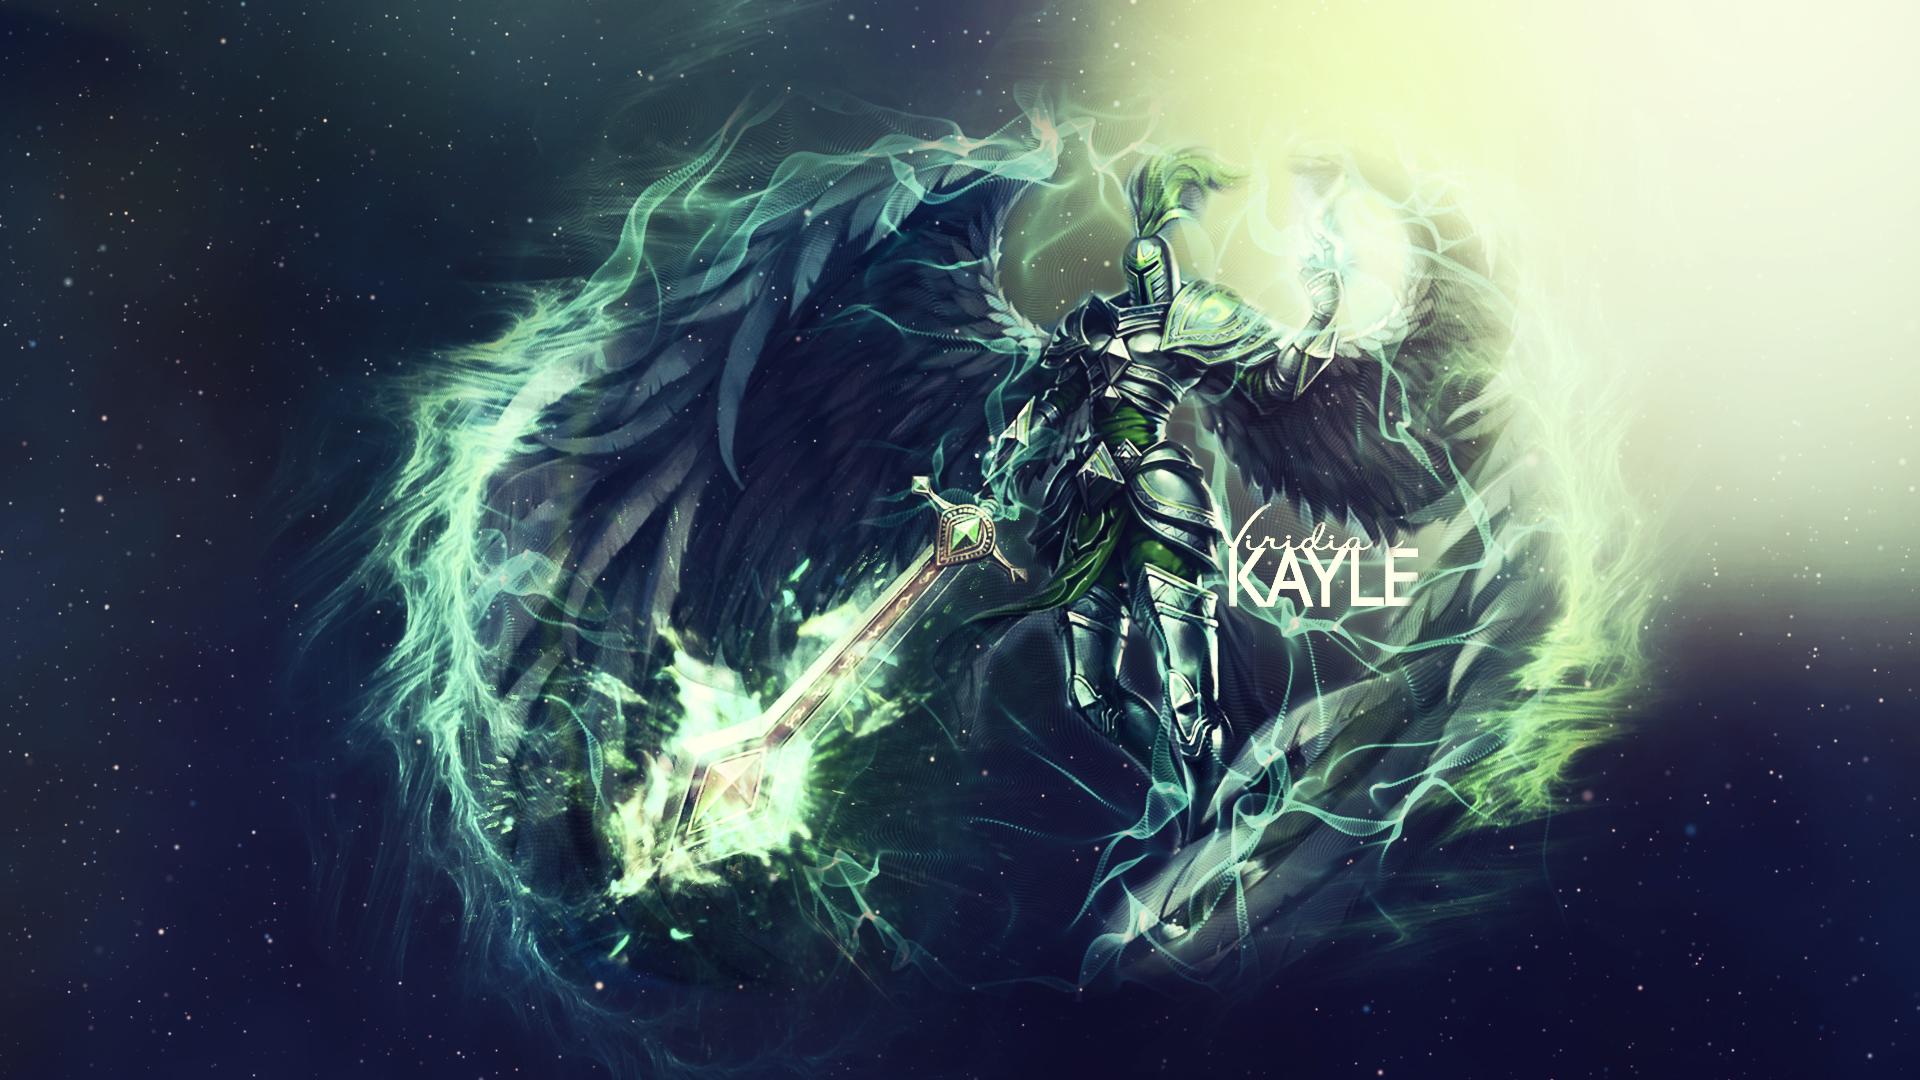 Viridian Kayle Wallpaper By Minccinofloof On Deviantart